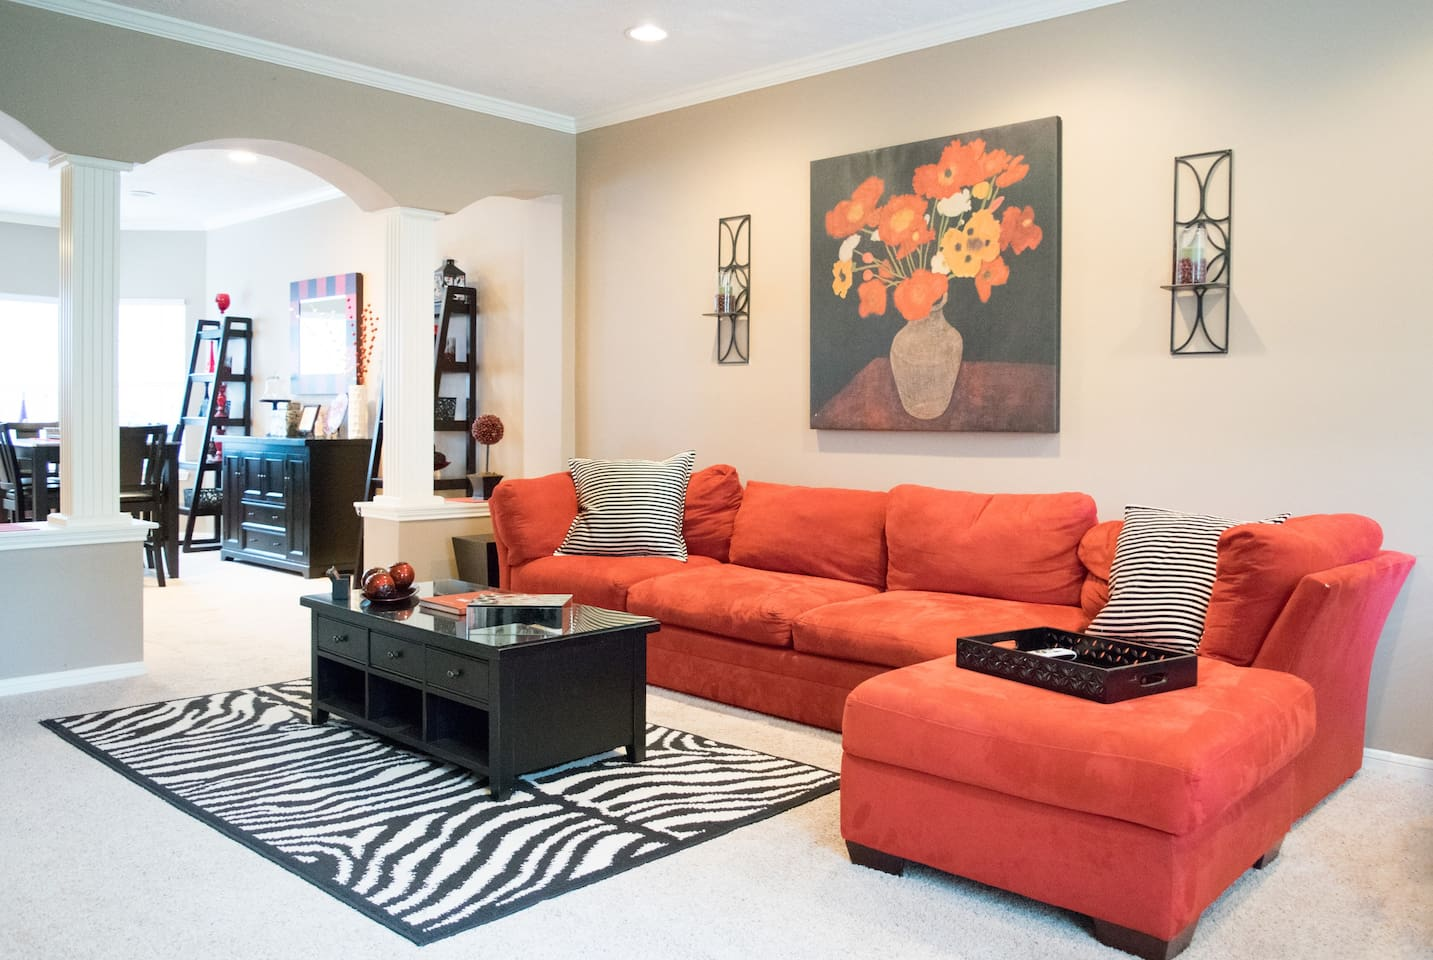 Family room area with great red couch